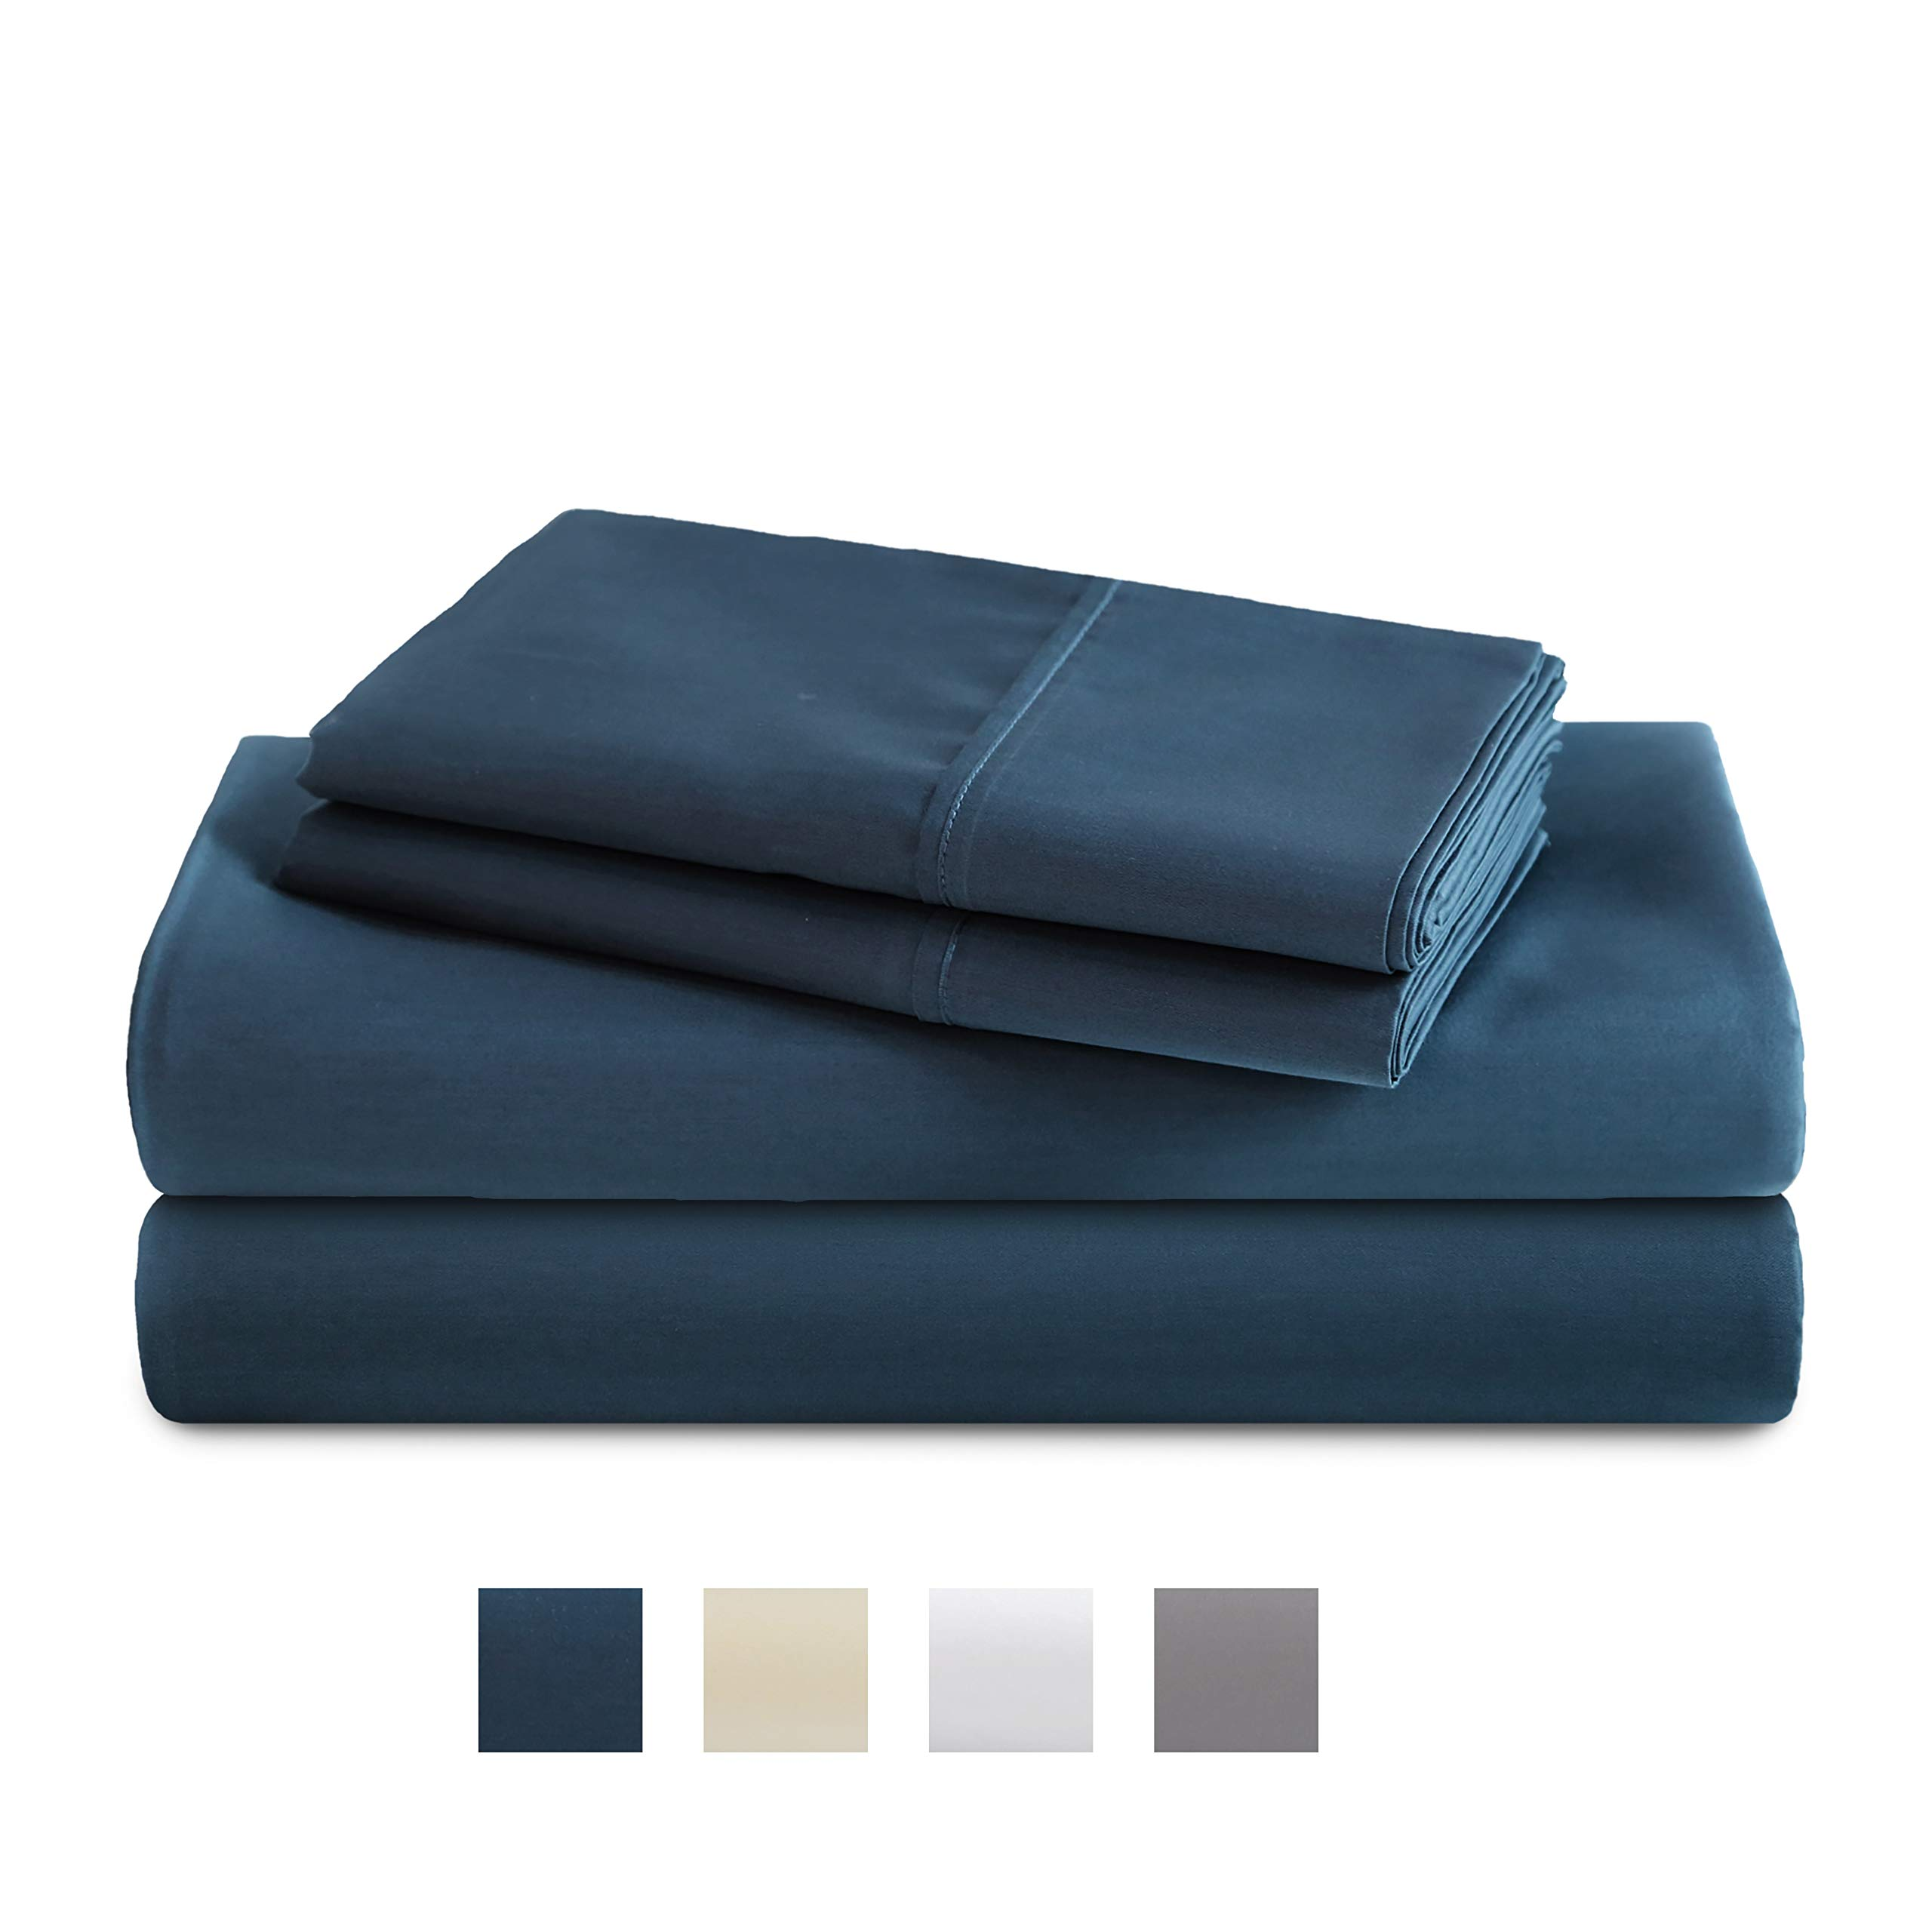 TRIDENT Queen Sheets, 400 Thread Count Sheet Set, 100% Cotton Sateen Weave, Moisture Wicking, Wrinkle Resistant, 4 Piece Sheet Set, Techno-fit, Soft, Air Rich Technology (Sea Blue, Queen) by TRIDENT